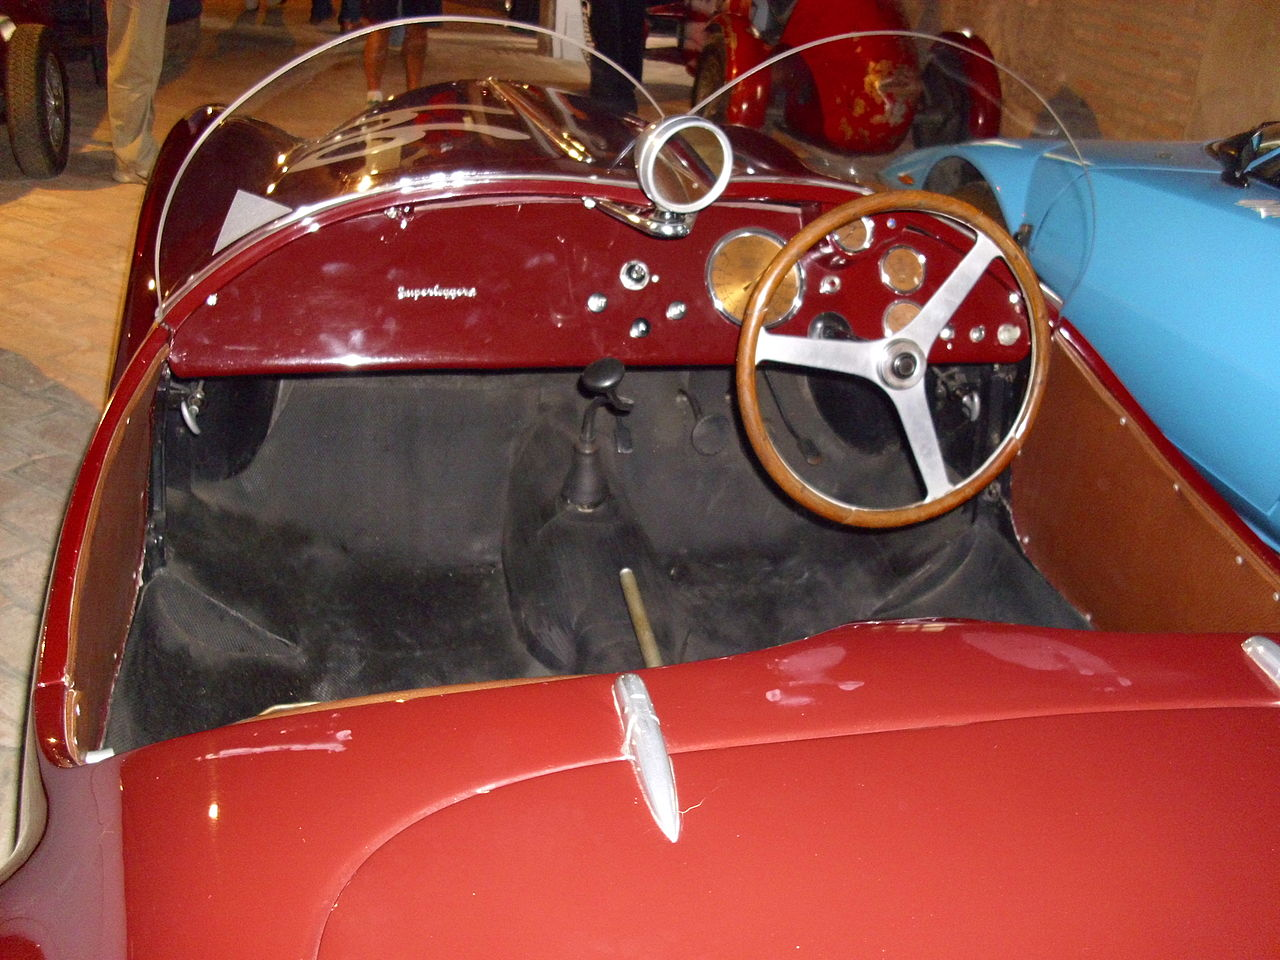 Interieur auto  File:Auto Avio Interieur.JPG - Wikimedia Commons